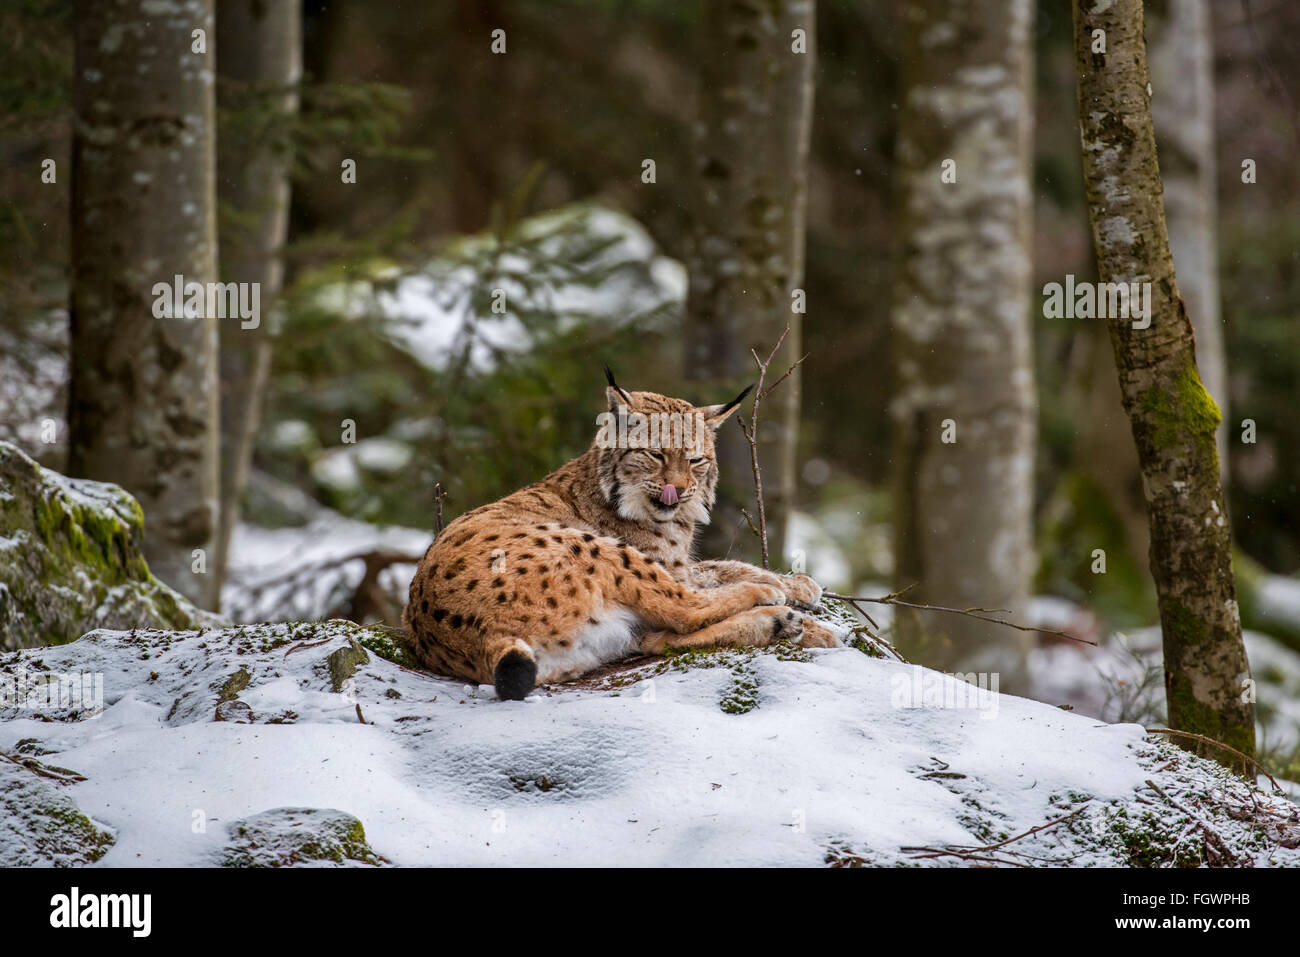 Eurasian lynx (Lynx lynx) licking nose while resting on rock in woodland in the snow in winter - Stock Image